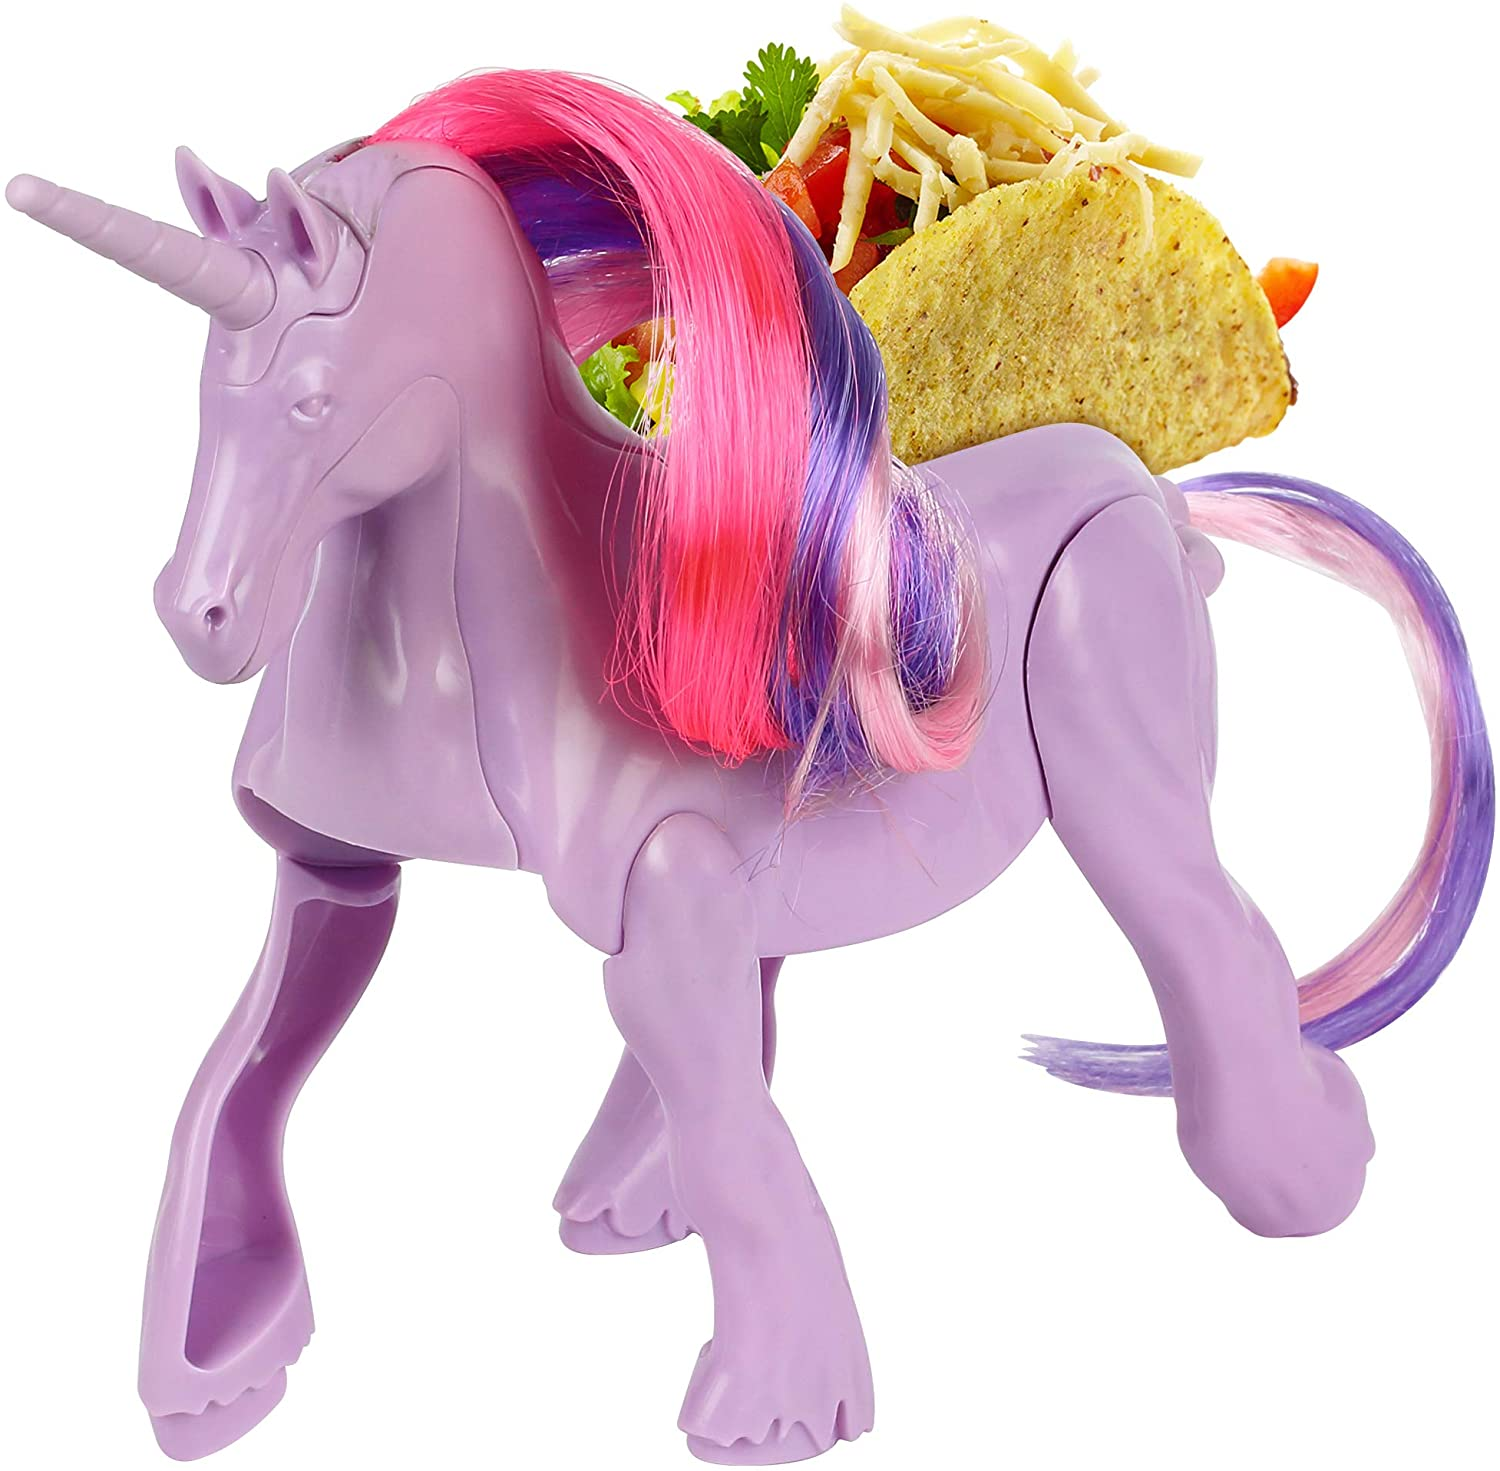 Unicorn Taco Holder - Mythical Taco Stand